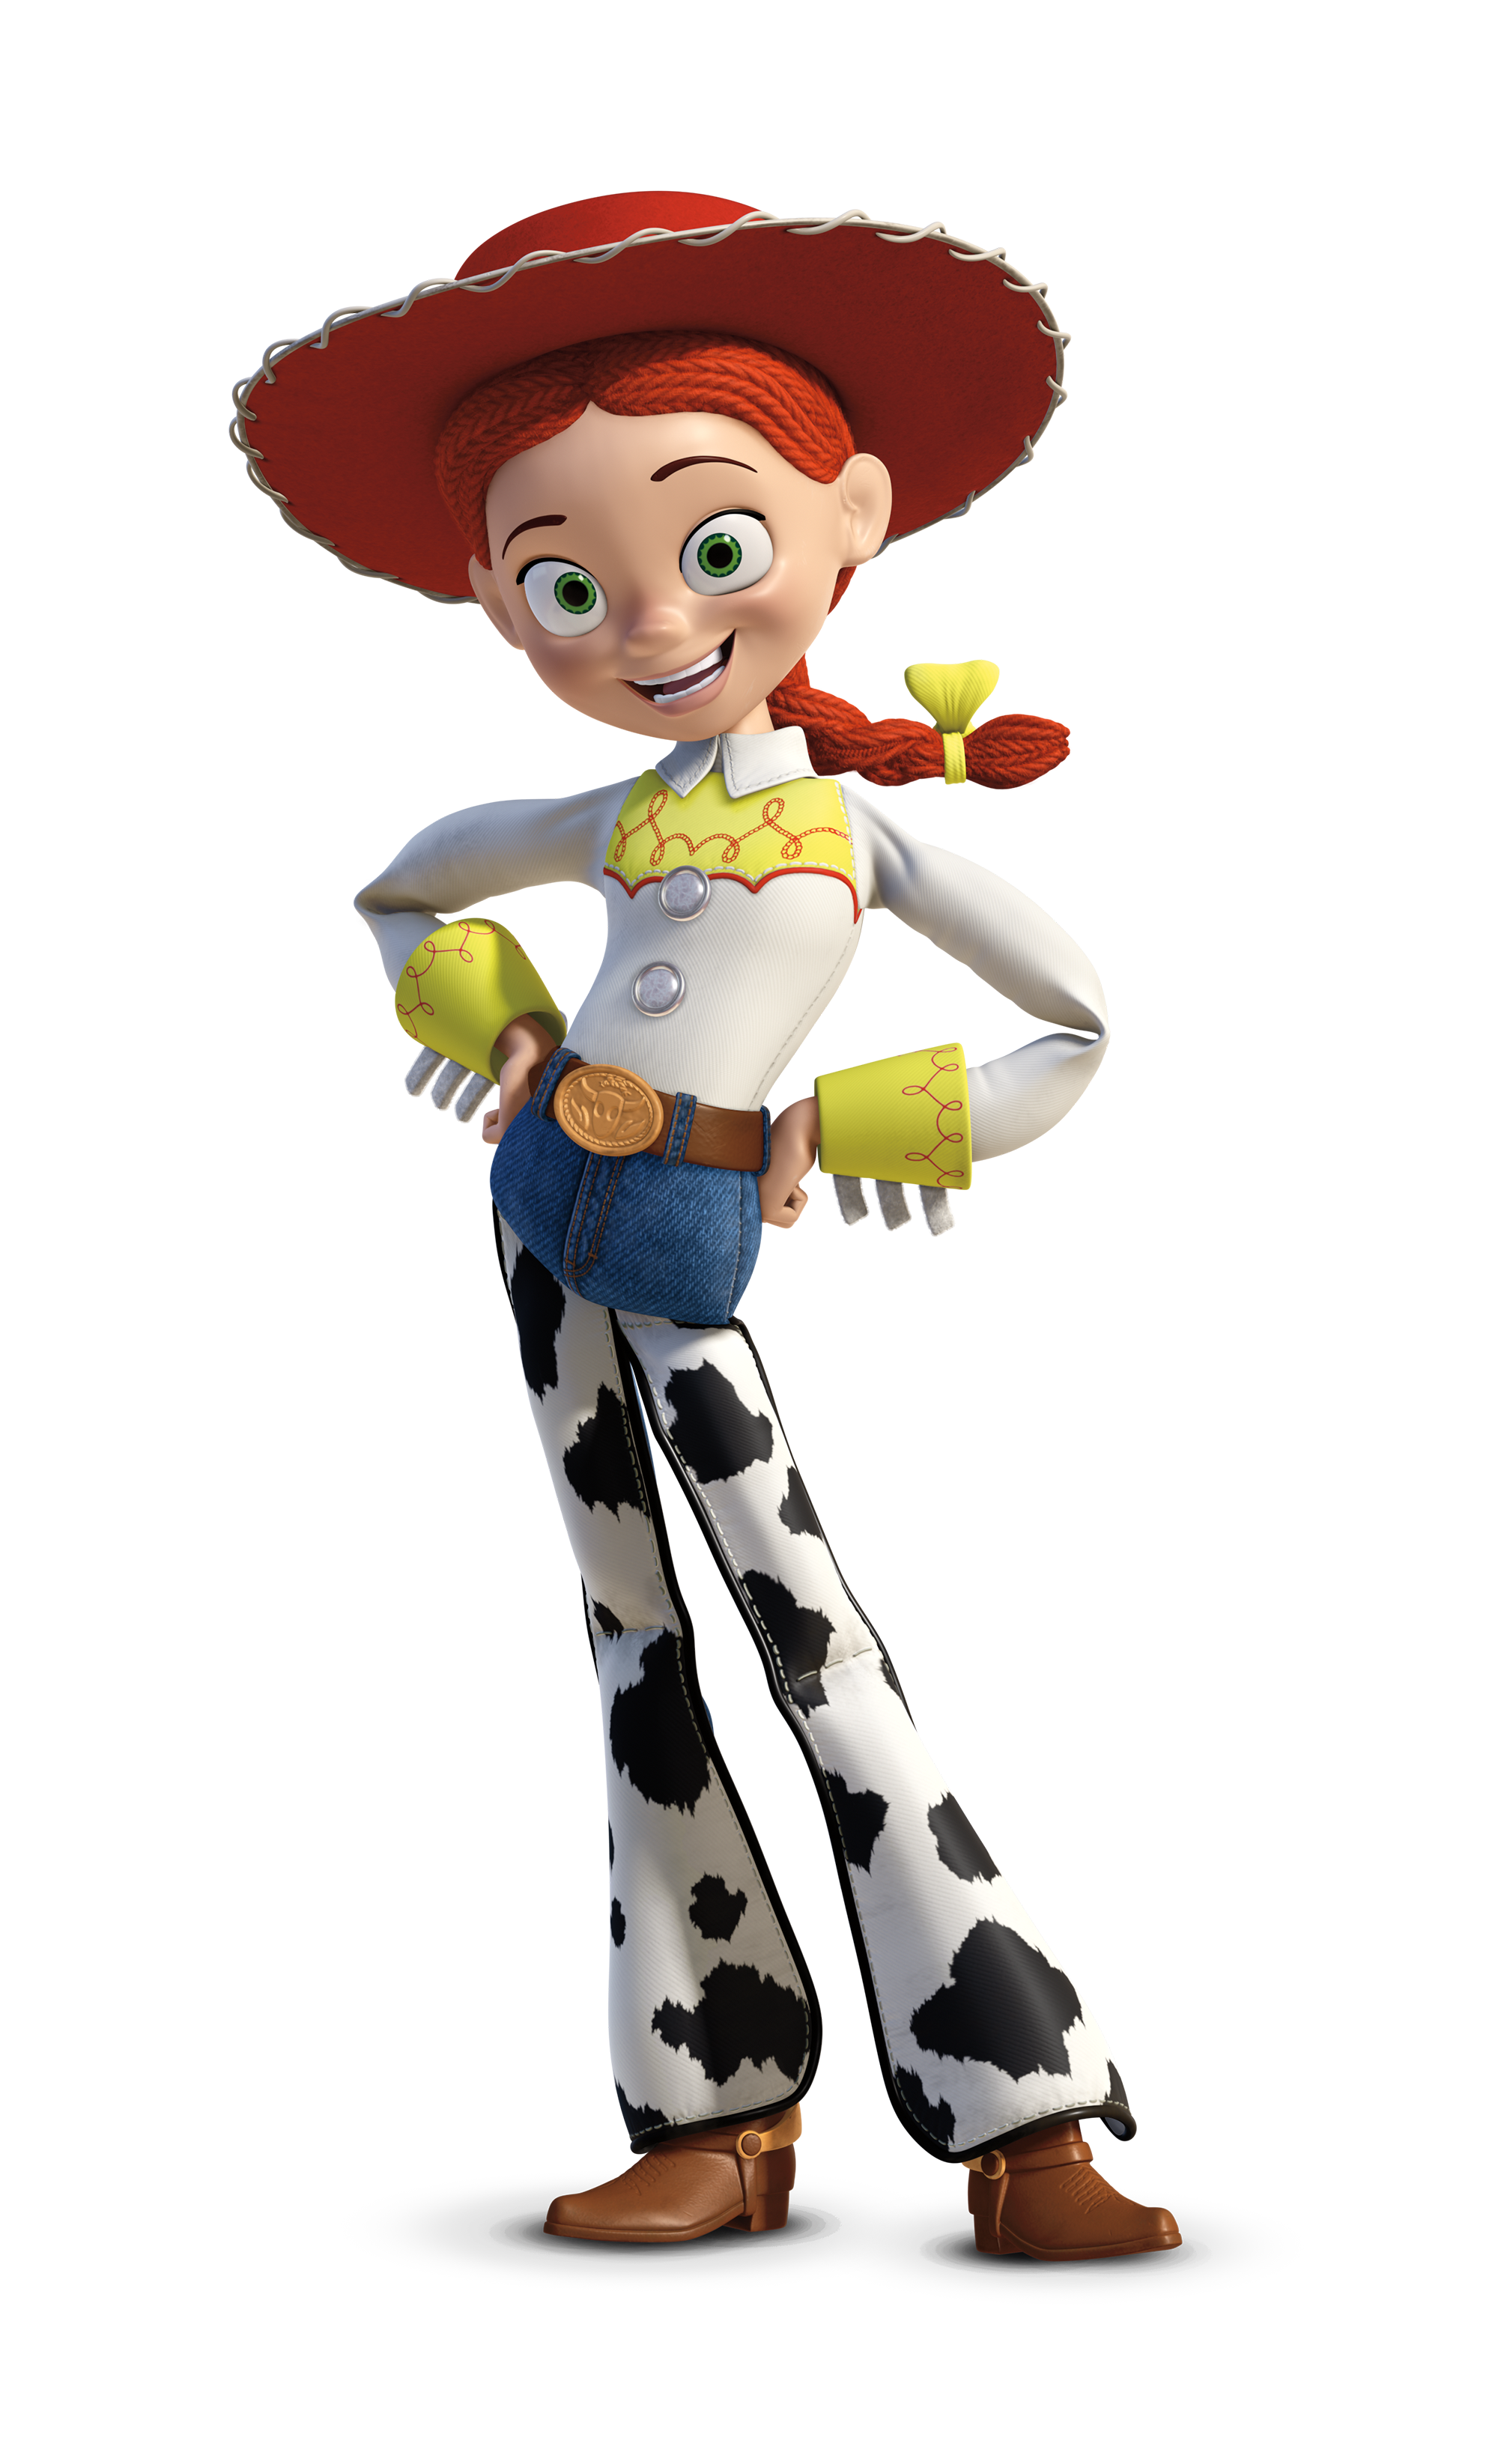 Jessie (Toy Story) | Heroes Wiki | FANDOM powered by Wikia